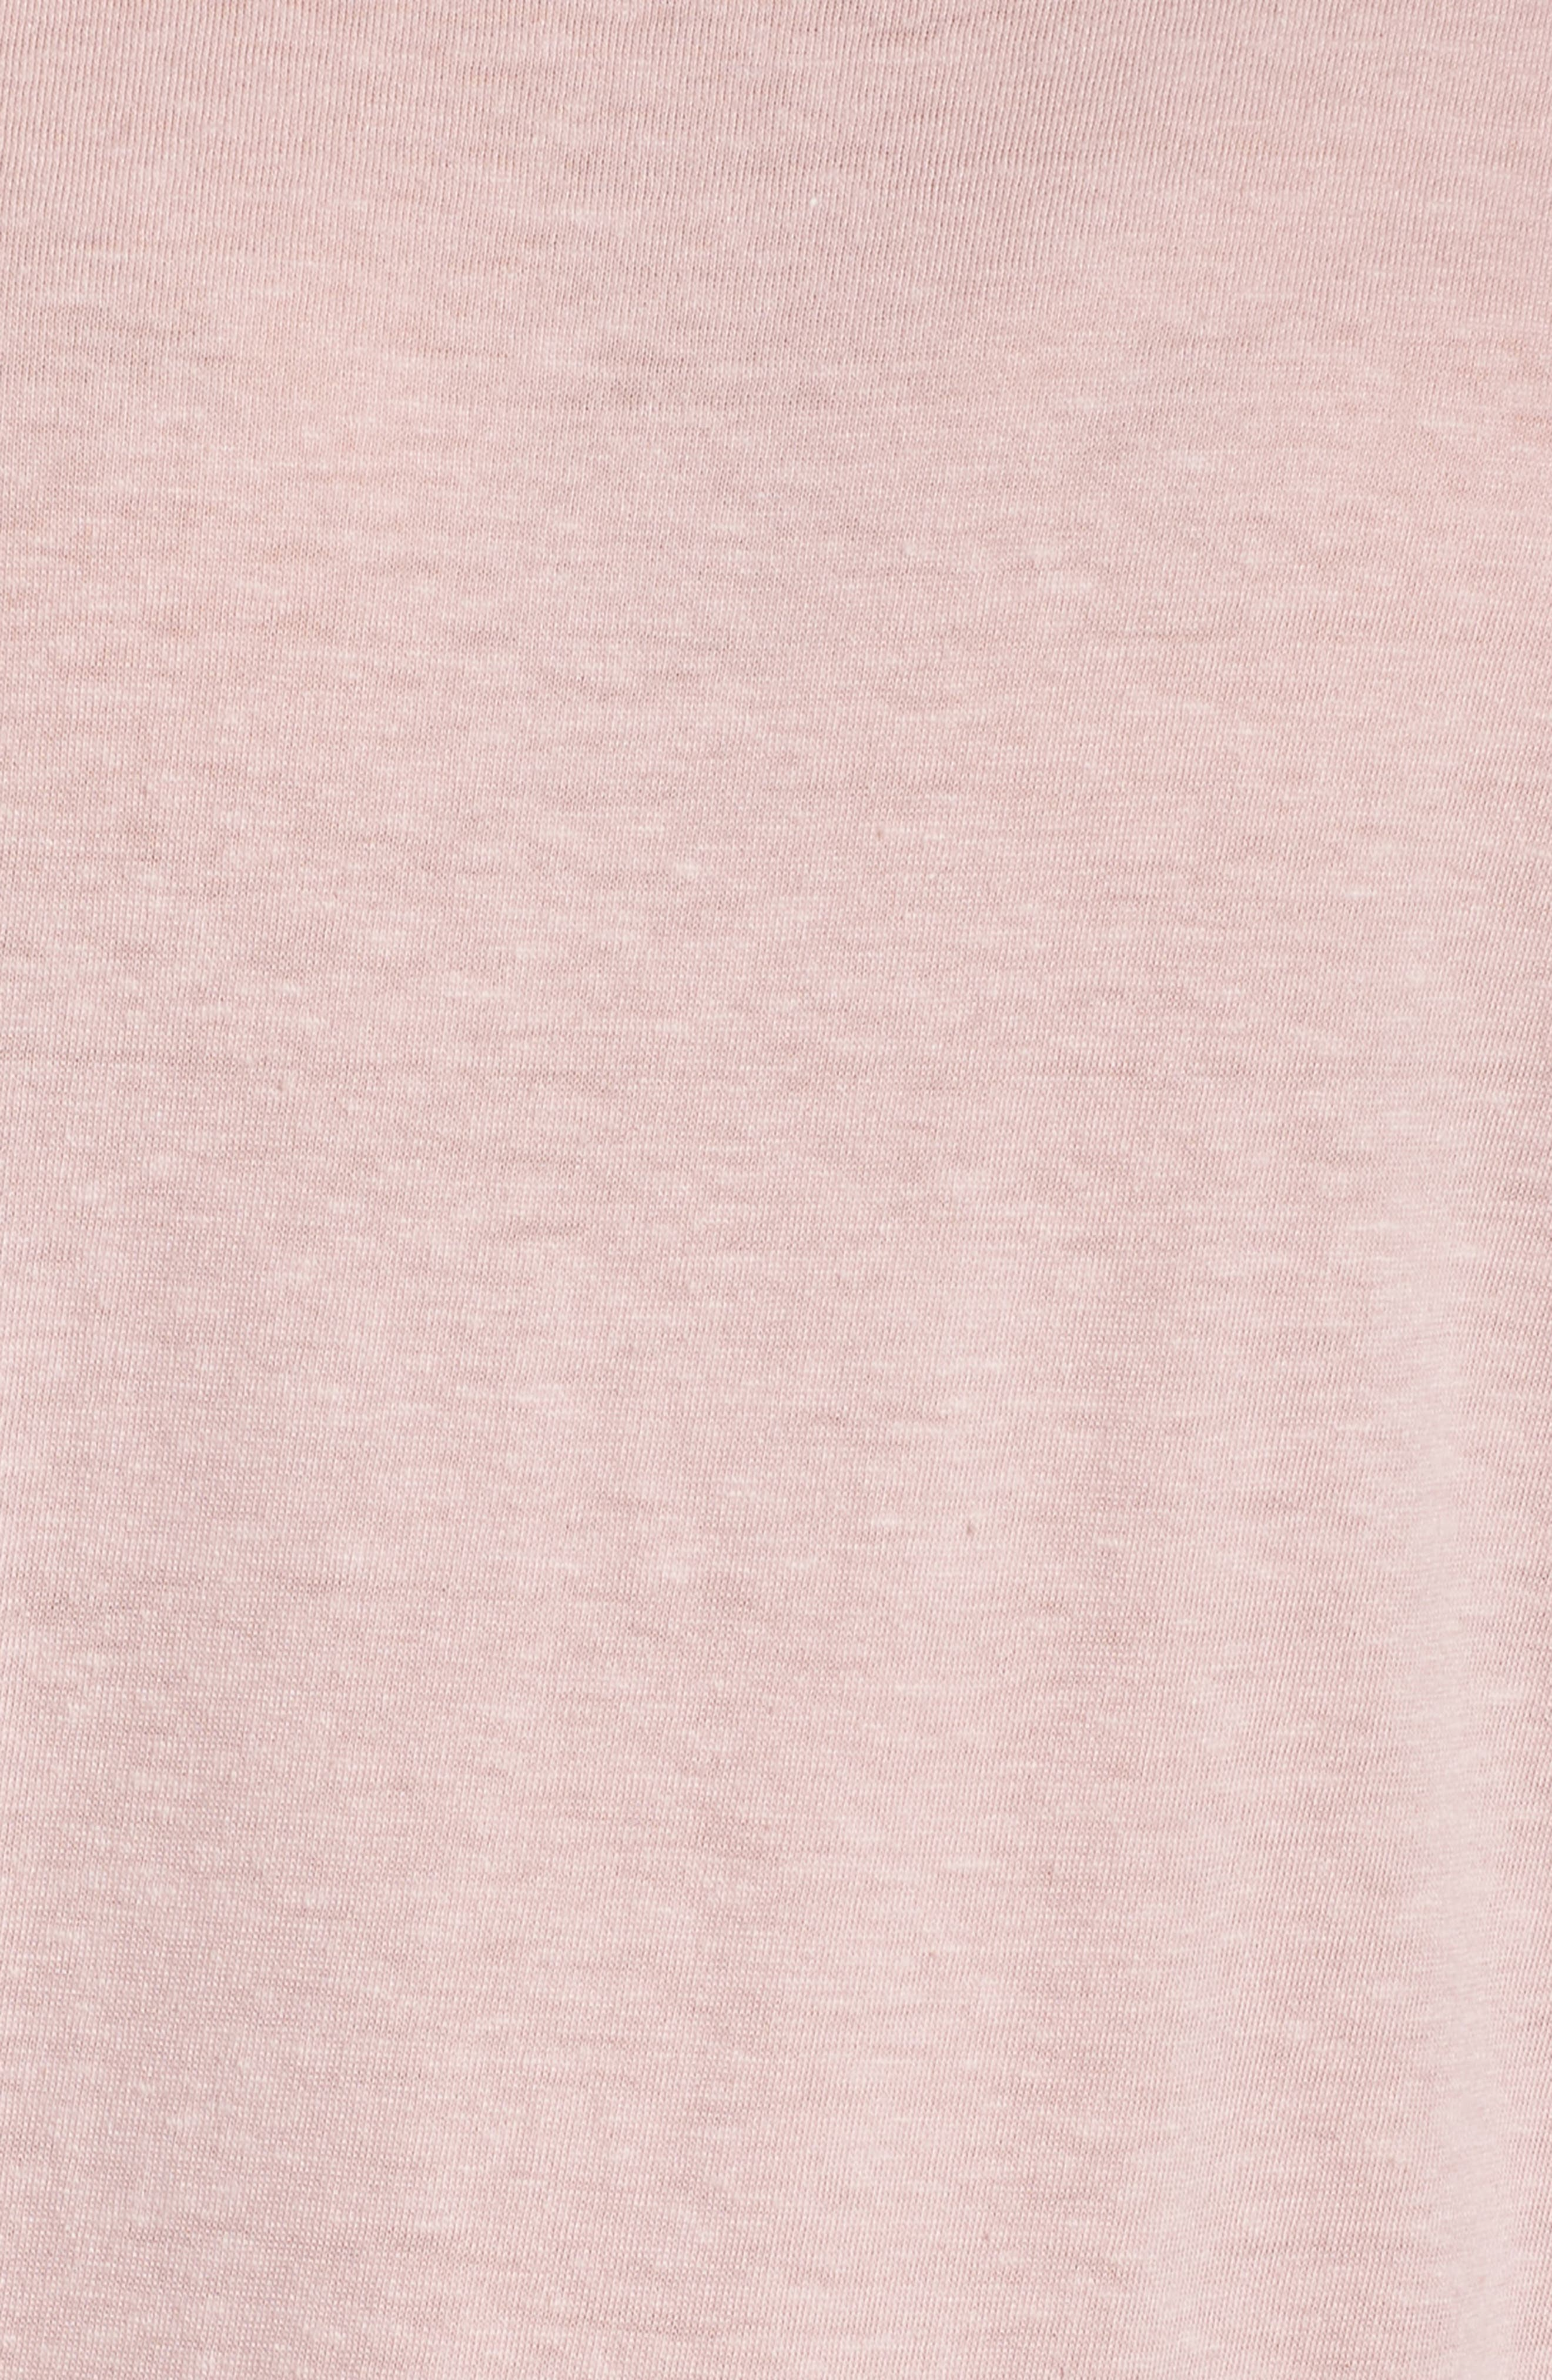 Heather Knit Slouchy Tee,                             Alternate thumbnail 5, color,                             CASHMERE ROSE